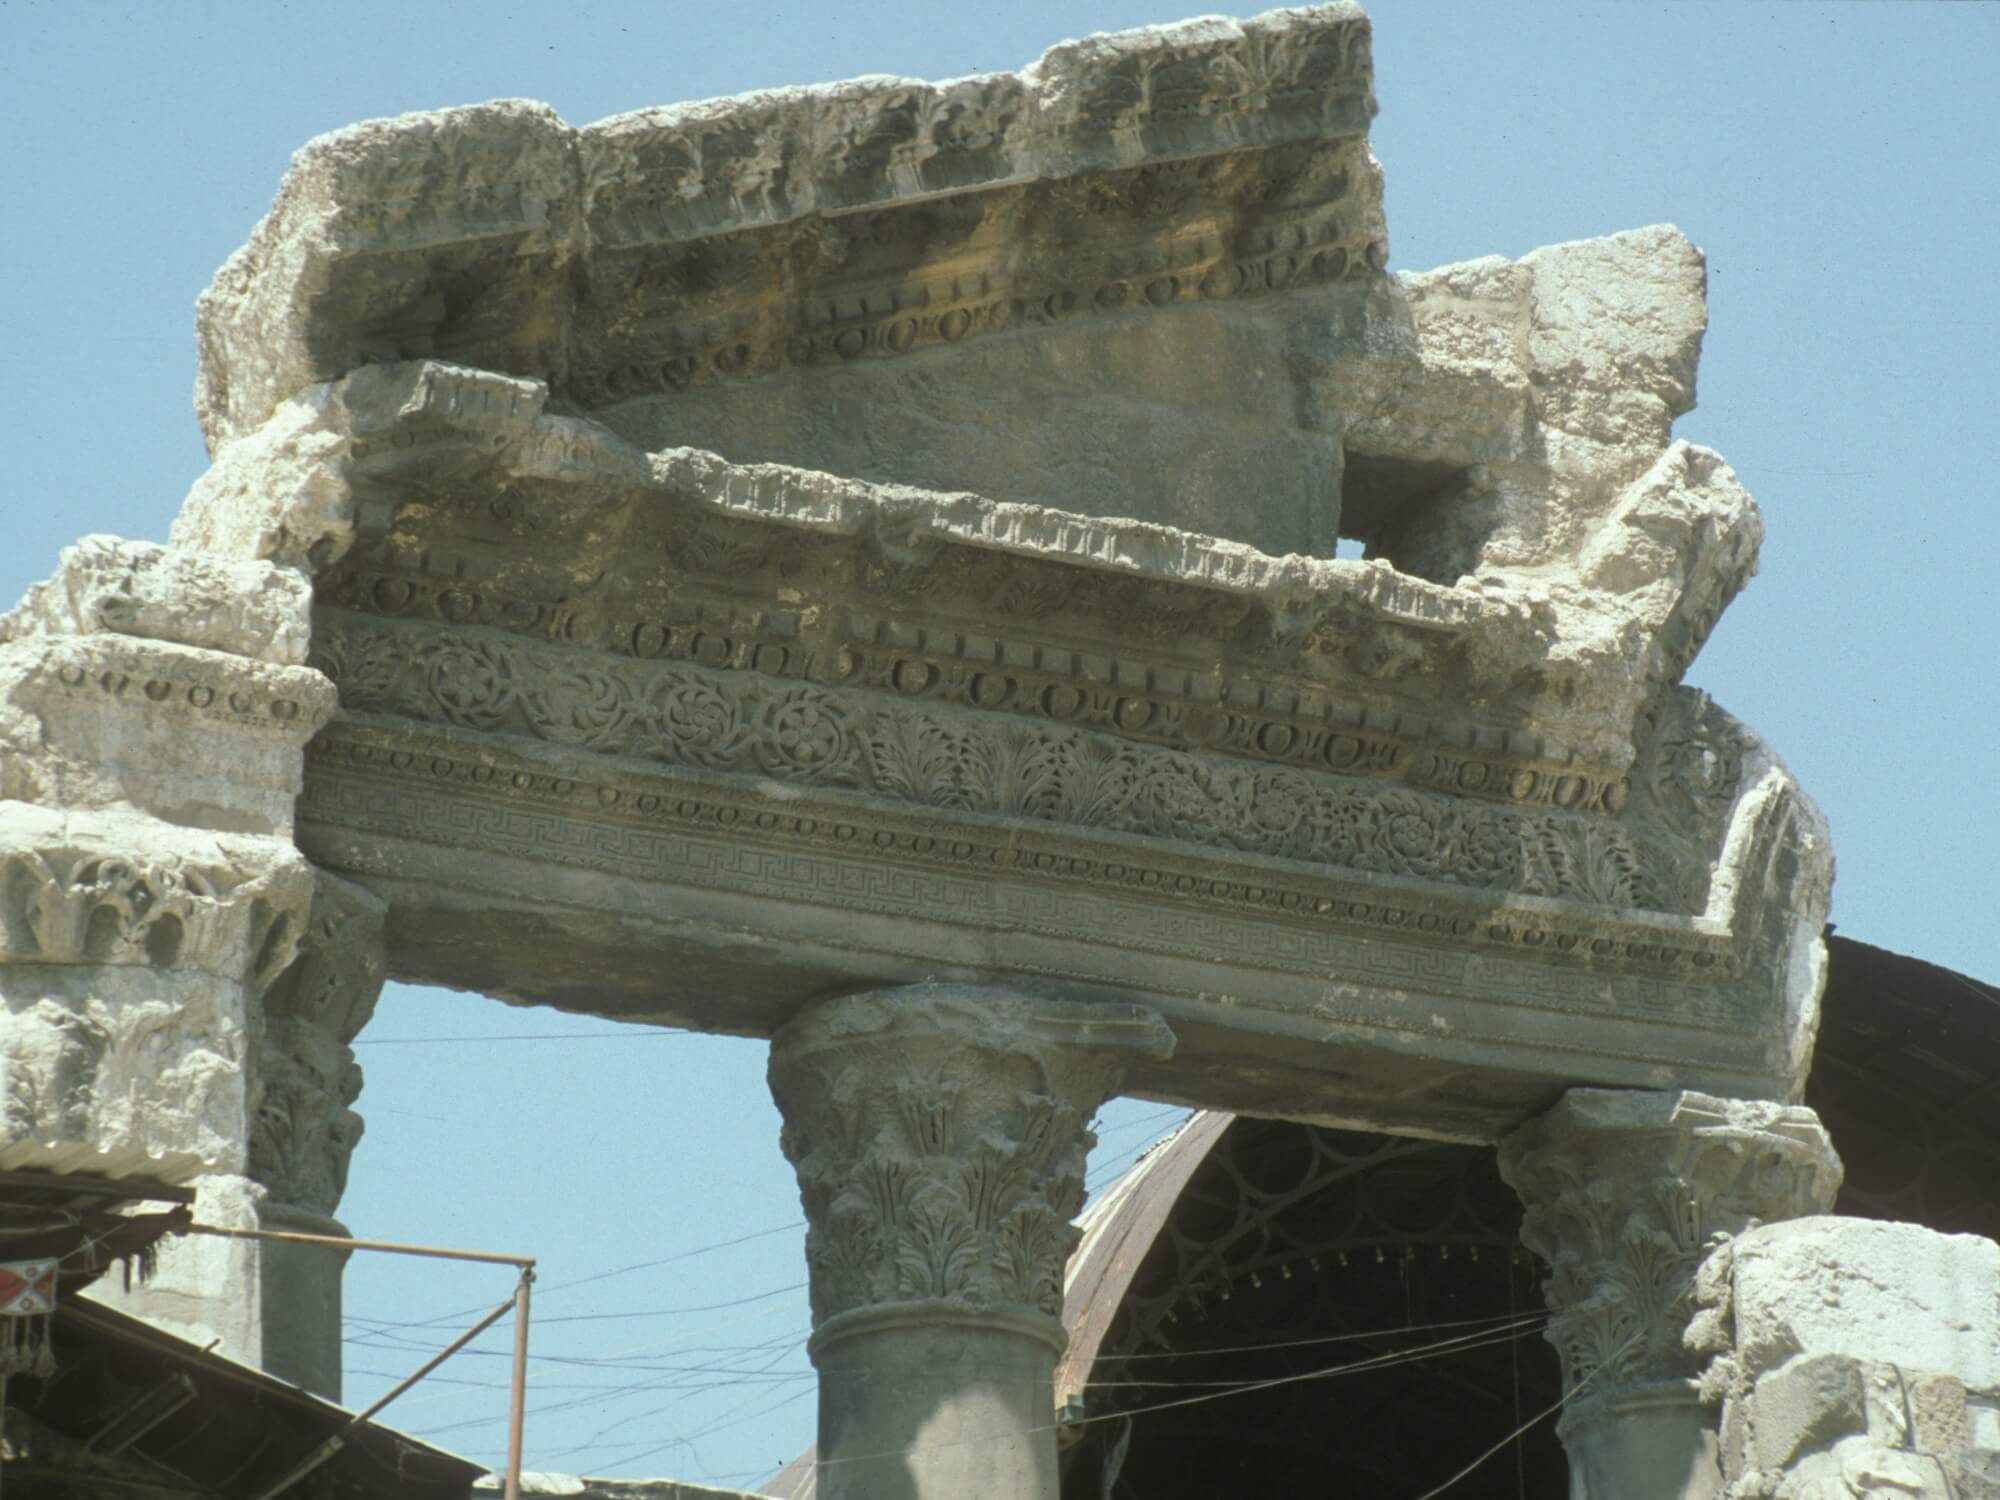 Heritage Protection and Military Necessity? The 'Monuments Men' and the Allied Bombing of Pompeii